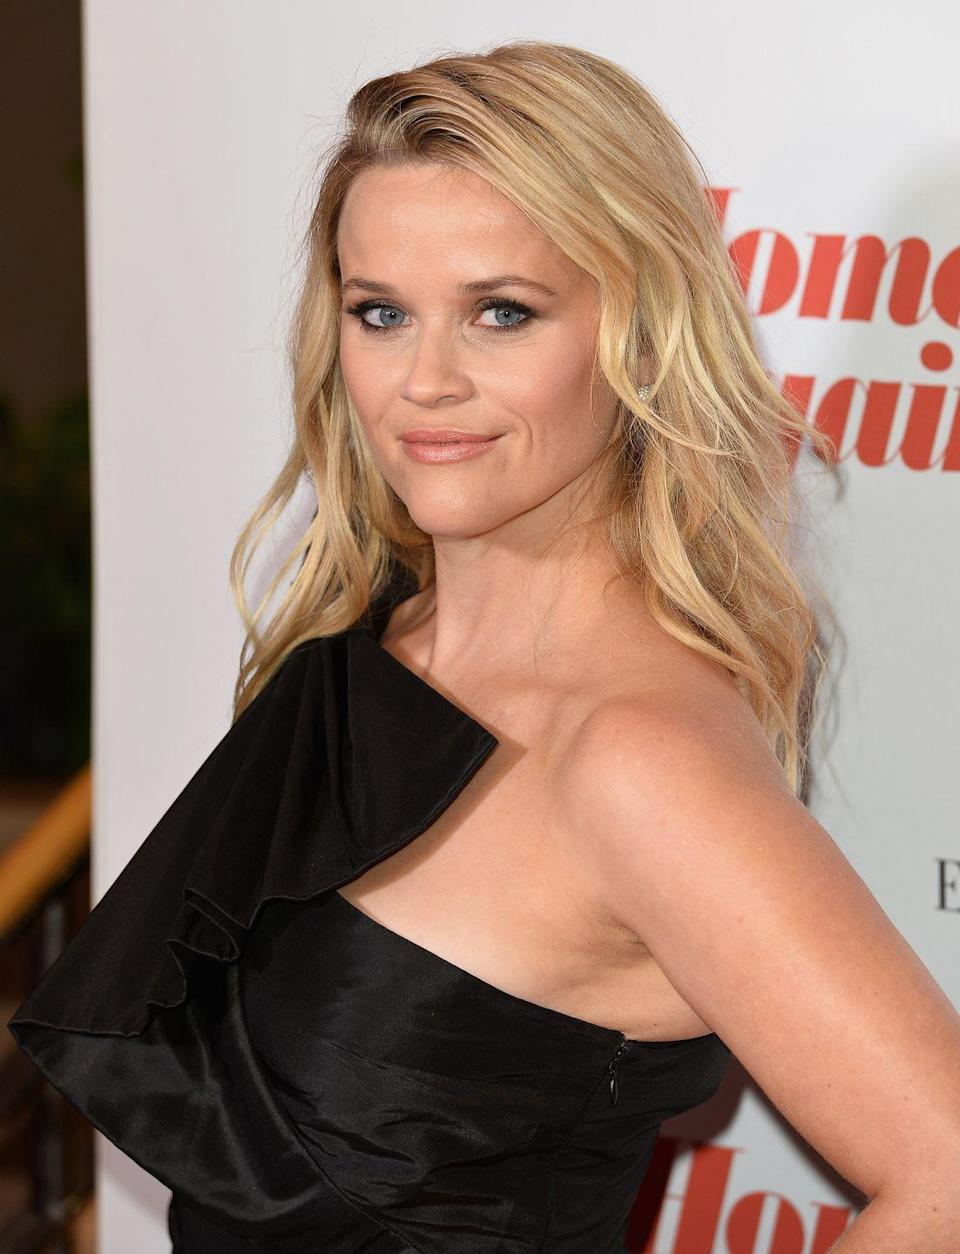 """<p><strong>Real name: </strong>Laura Jeanne Reese Witherspoon</p><p>Reese kept her name but shortened it, choosing to keep her mom's maiden name, Reese, and make that her first. Apparently, <a href=""""https://www.thetalko.com/20-little-known-details-about-reese-witherspoon-she-keeps-under-wraps/"""" rel=""""nofollow noopener"""" target=""""_blank"""" data-ylk=""""slk:she changed her name"""" class=""""link rapid-noclick-resp"""">she changed her name</a> to make it more """"Hollywood."""" </p>"""